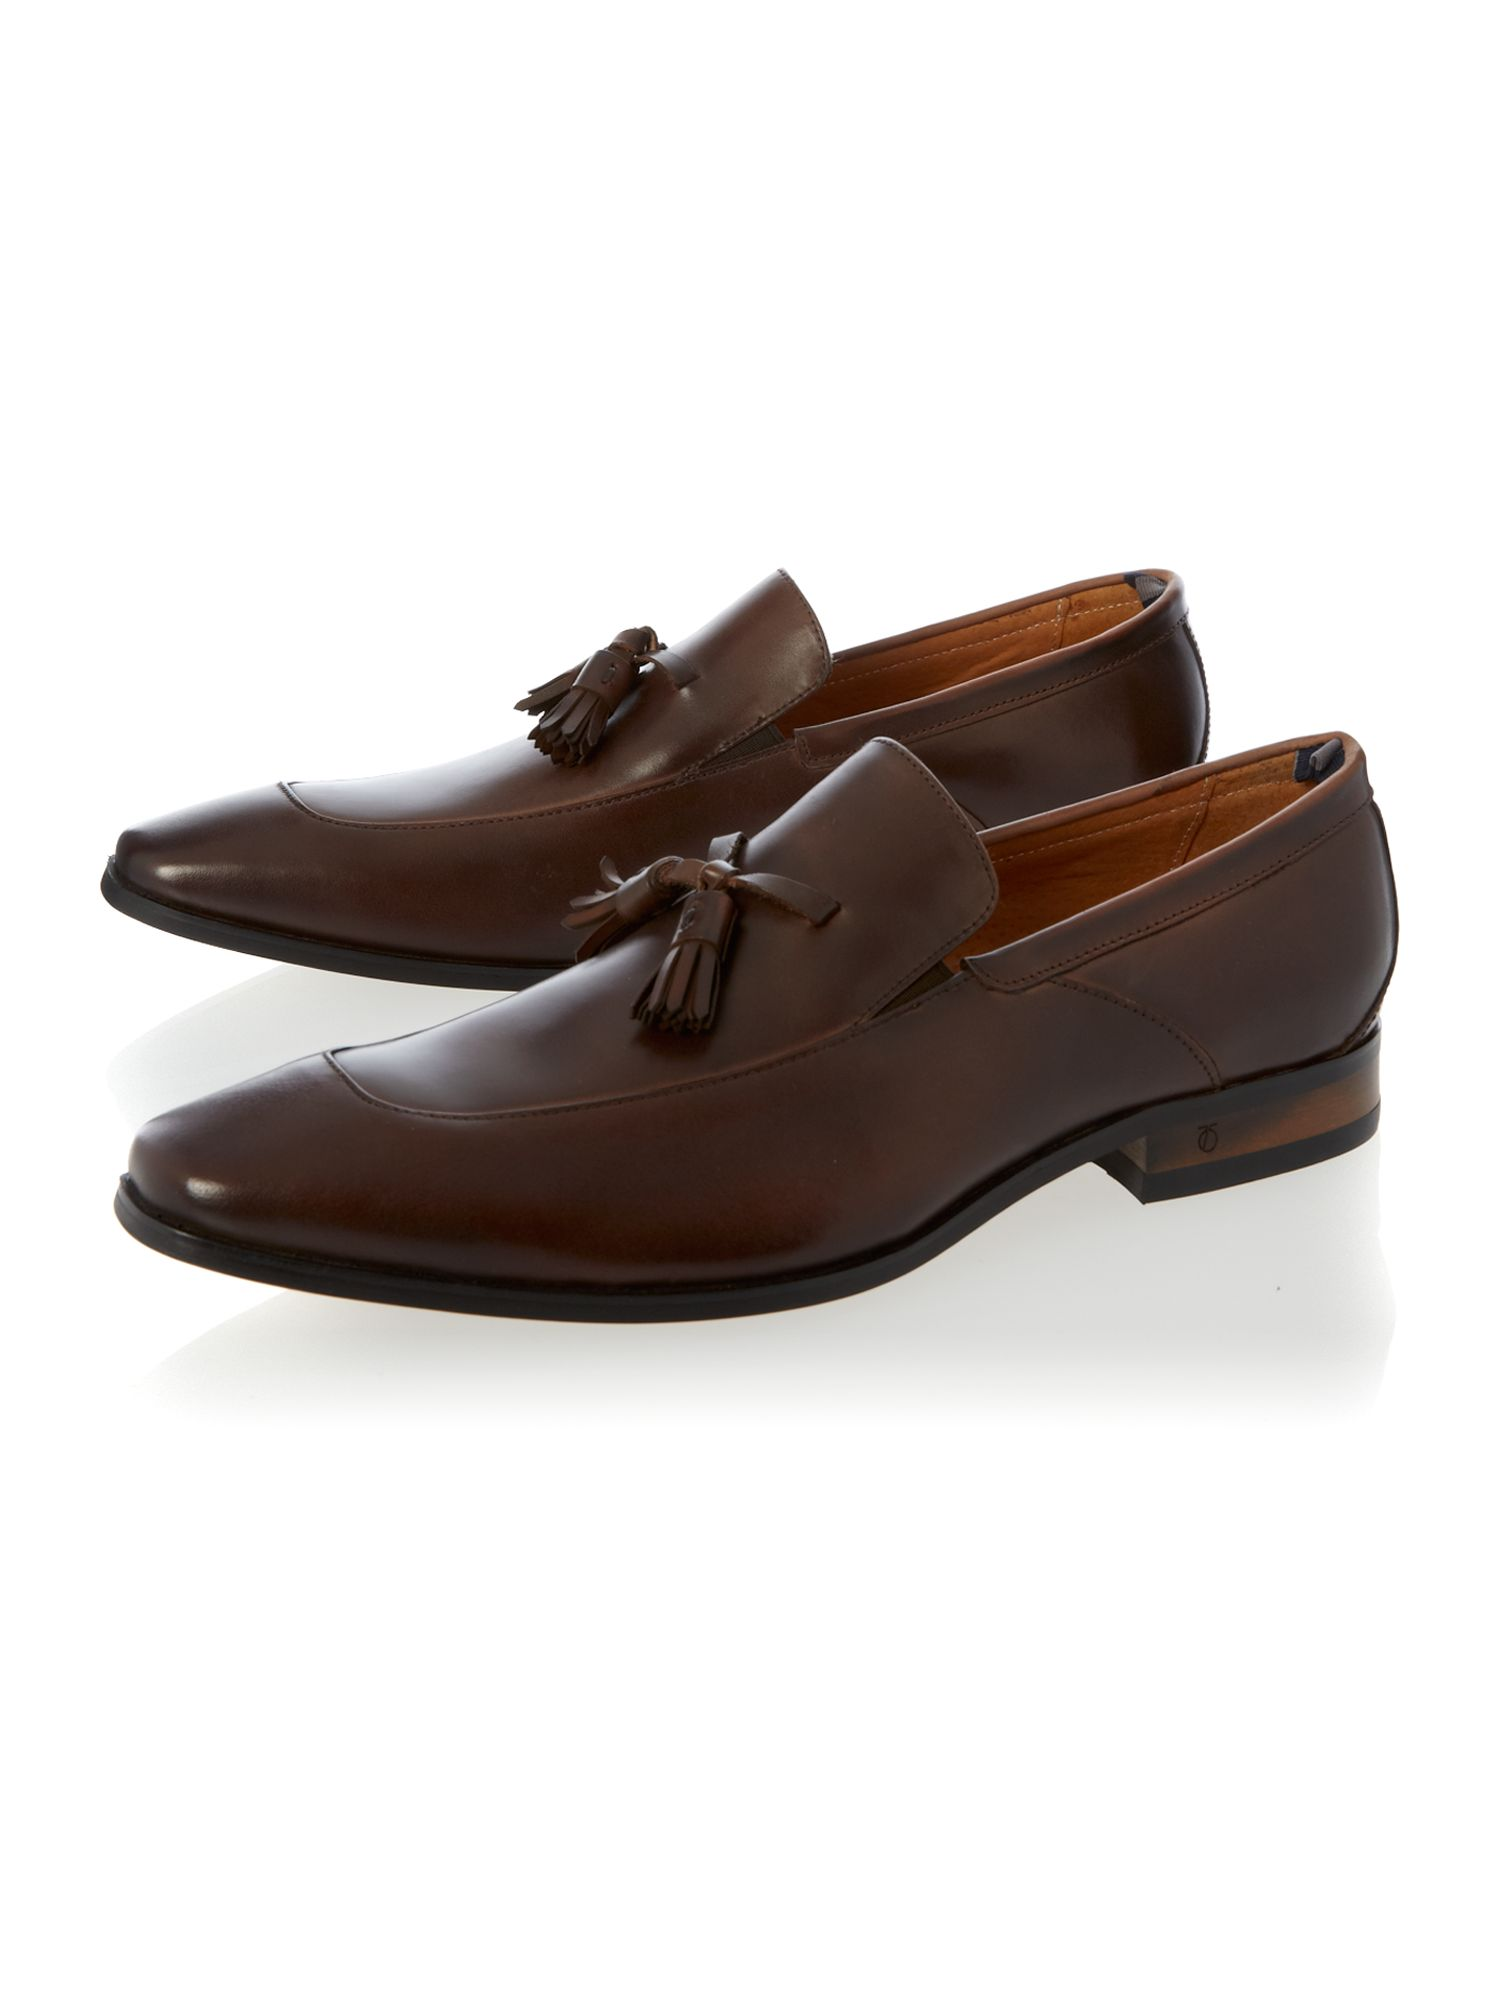 Graham tassled loafer